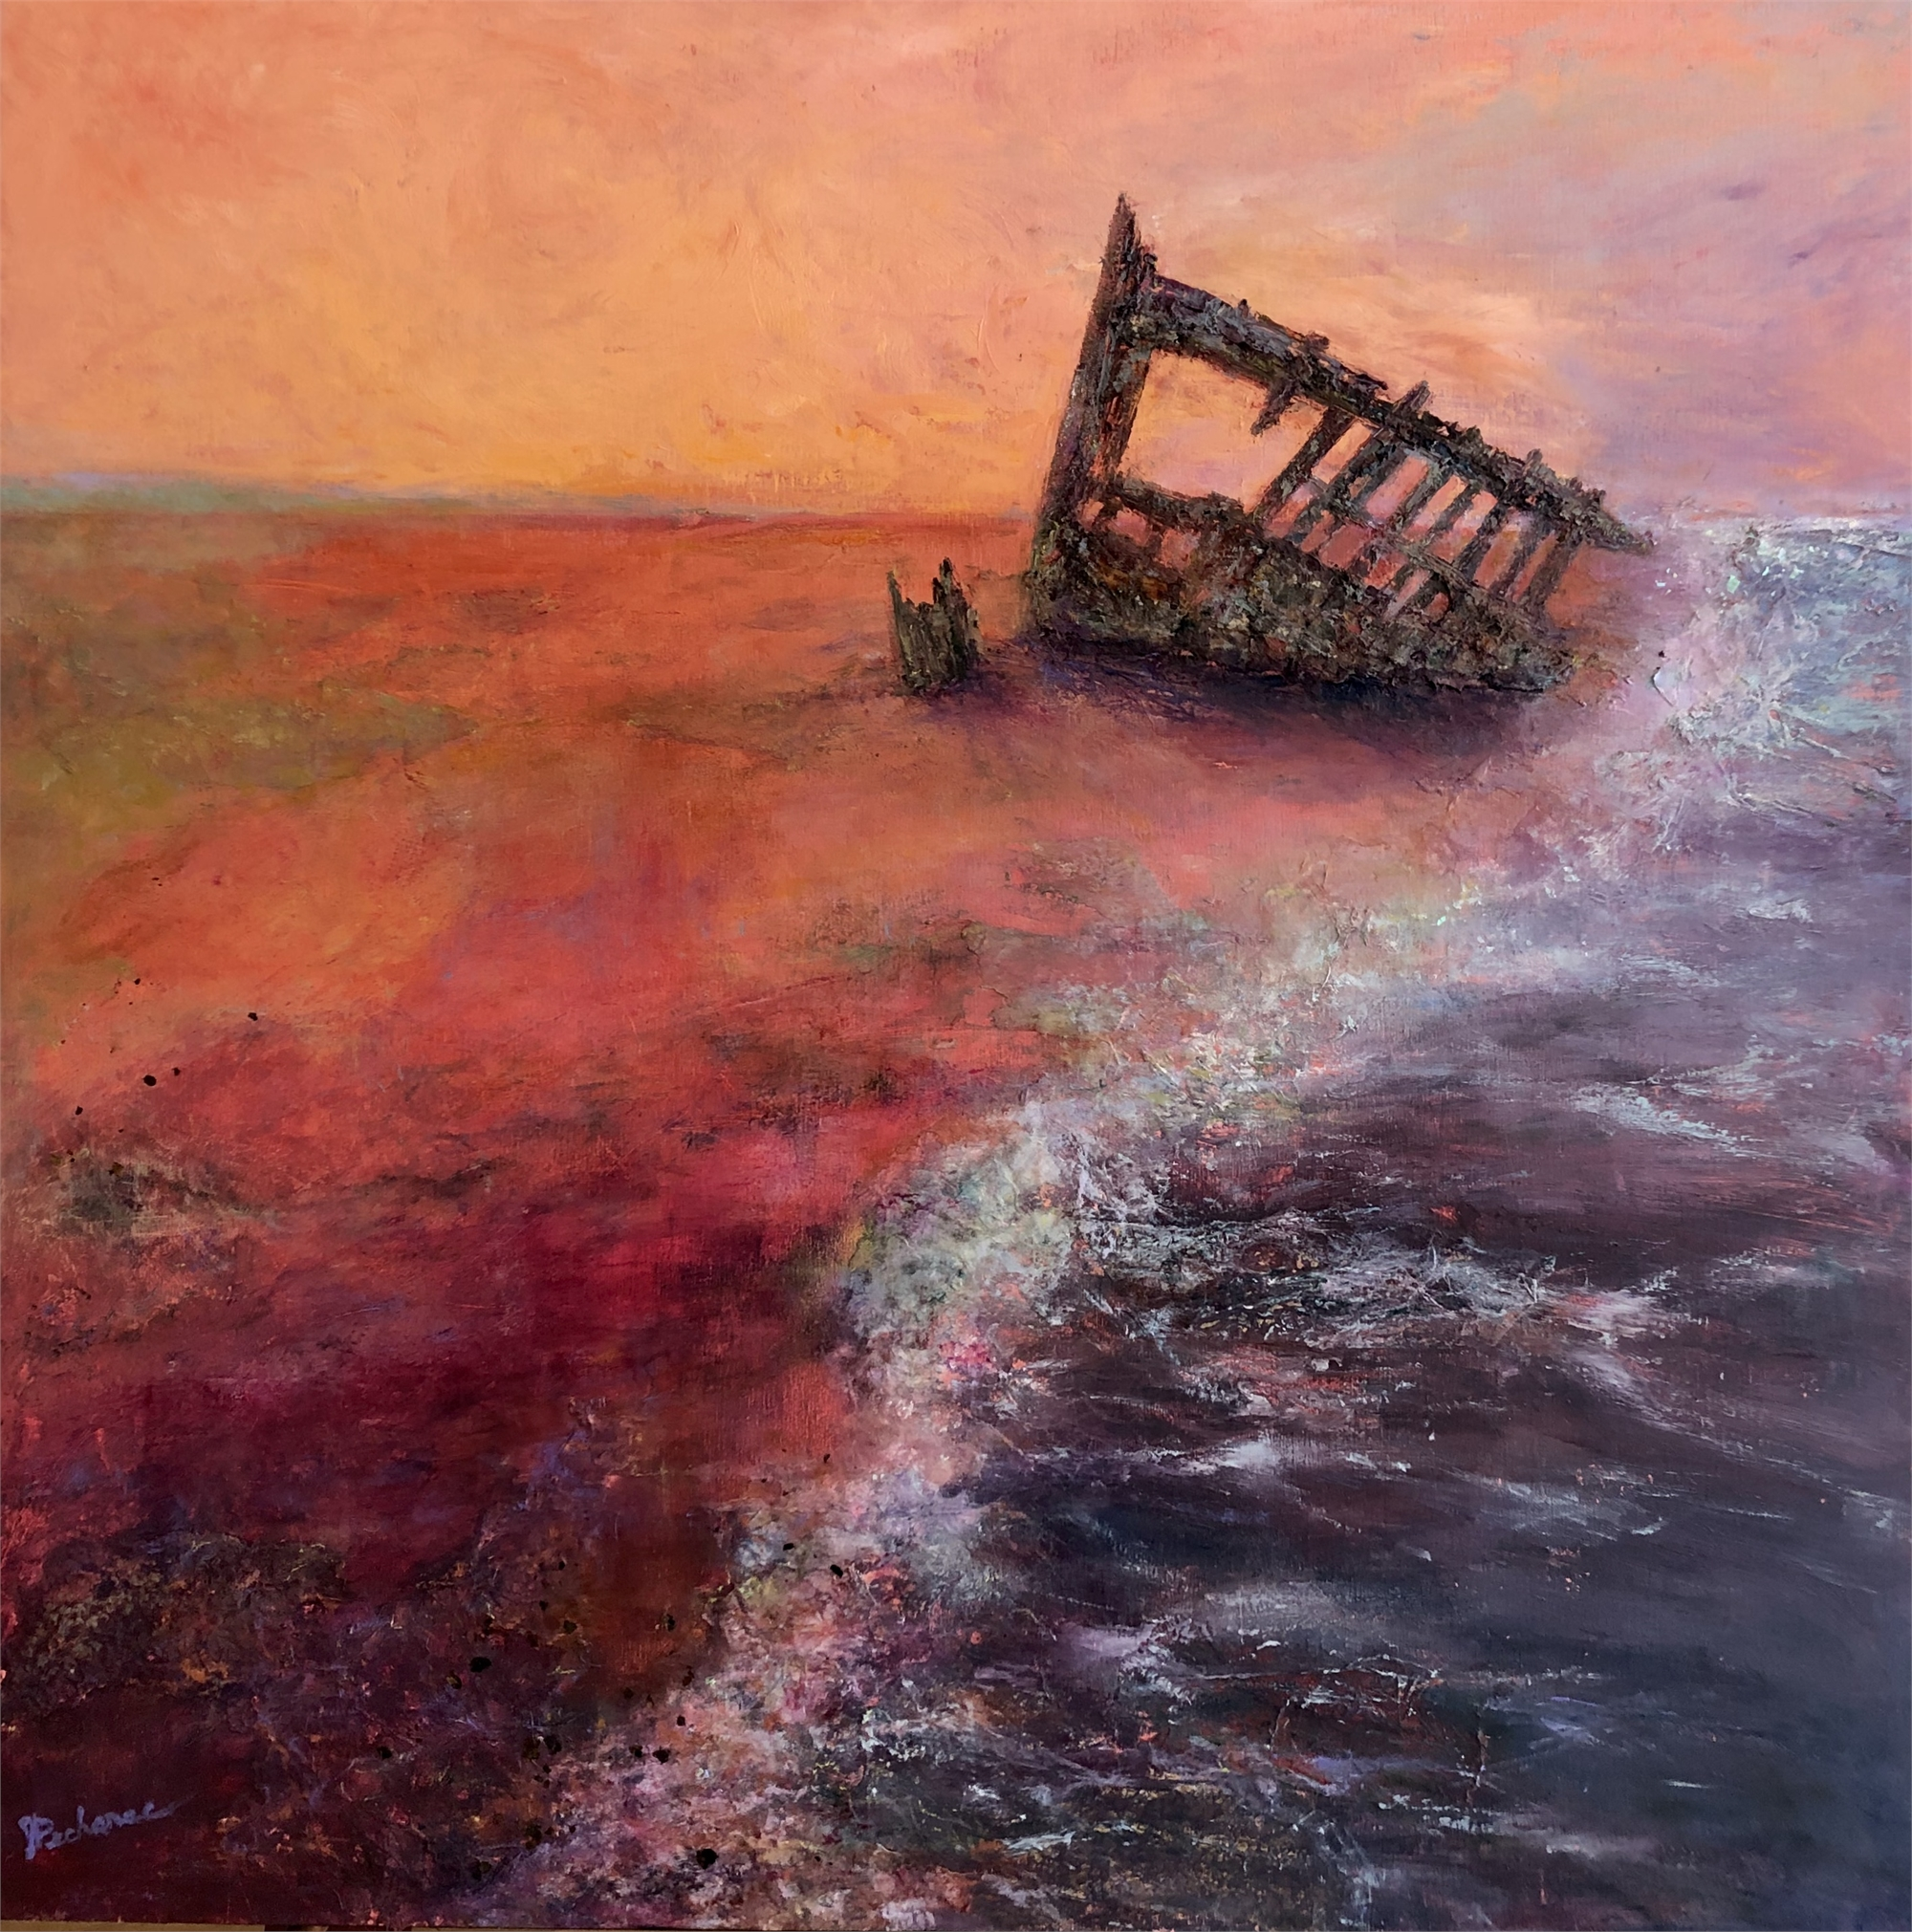 Shipwrecked by Joan Pechanec (McMinnville, OR)